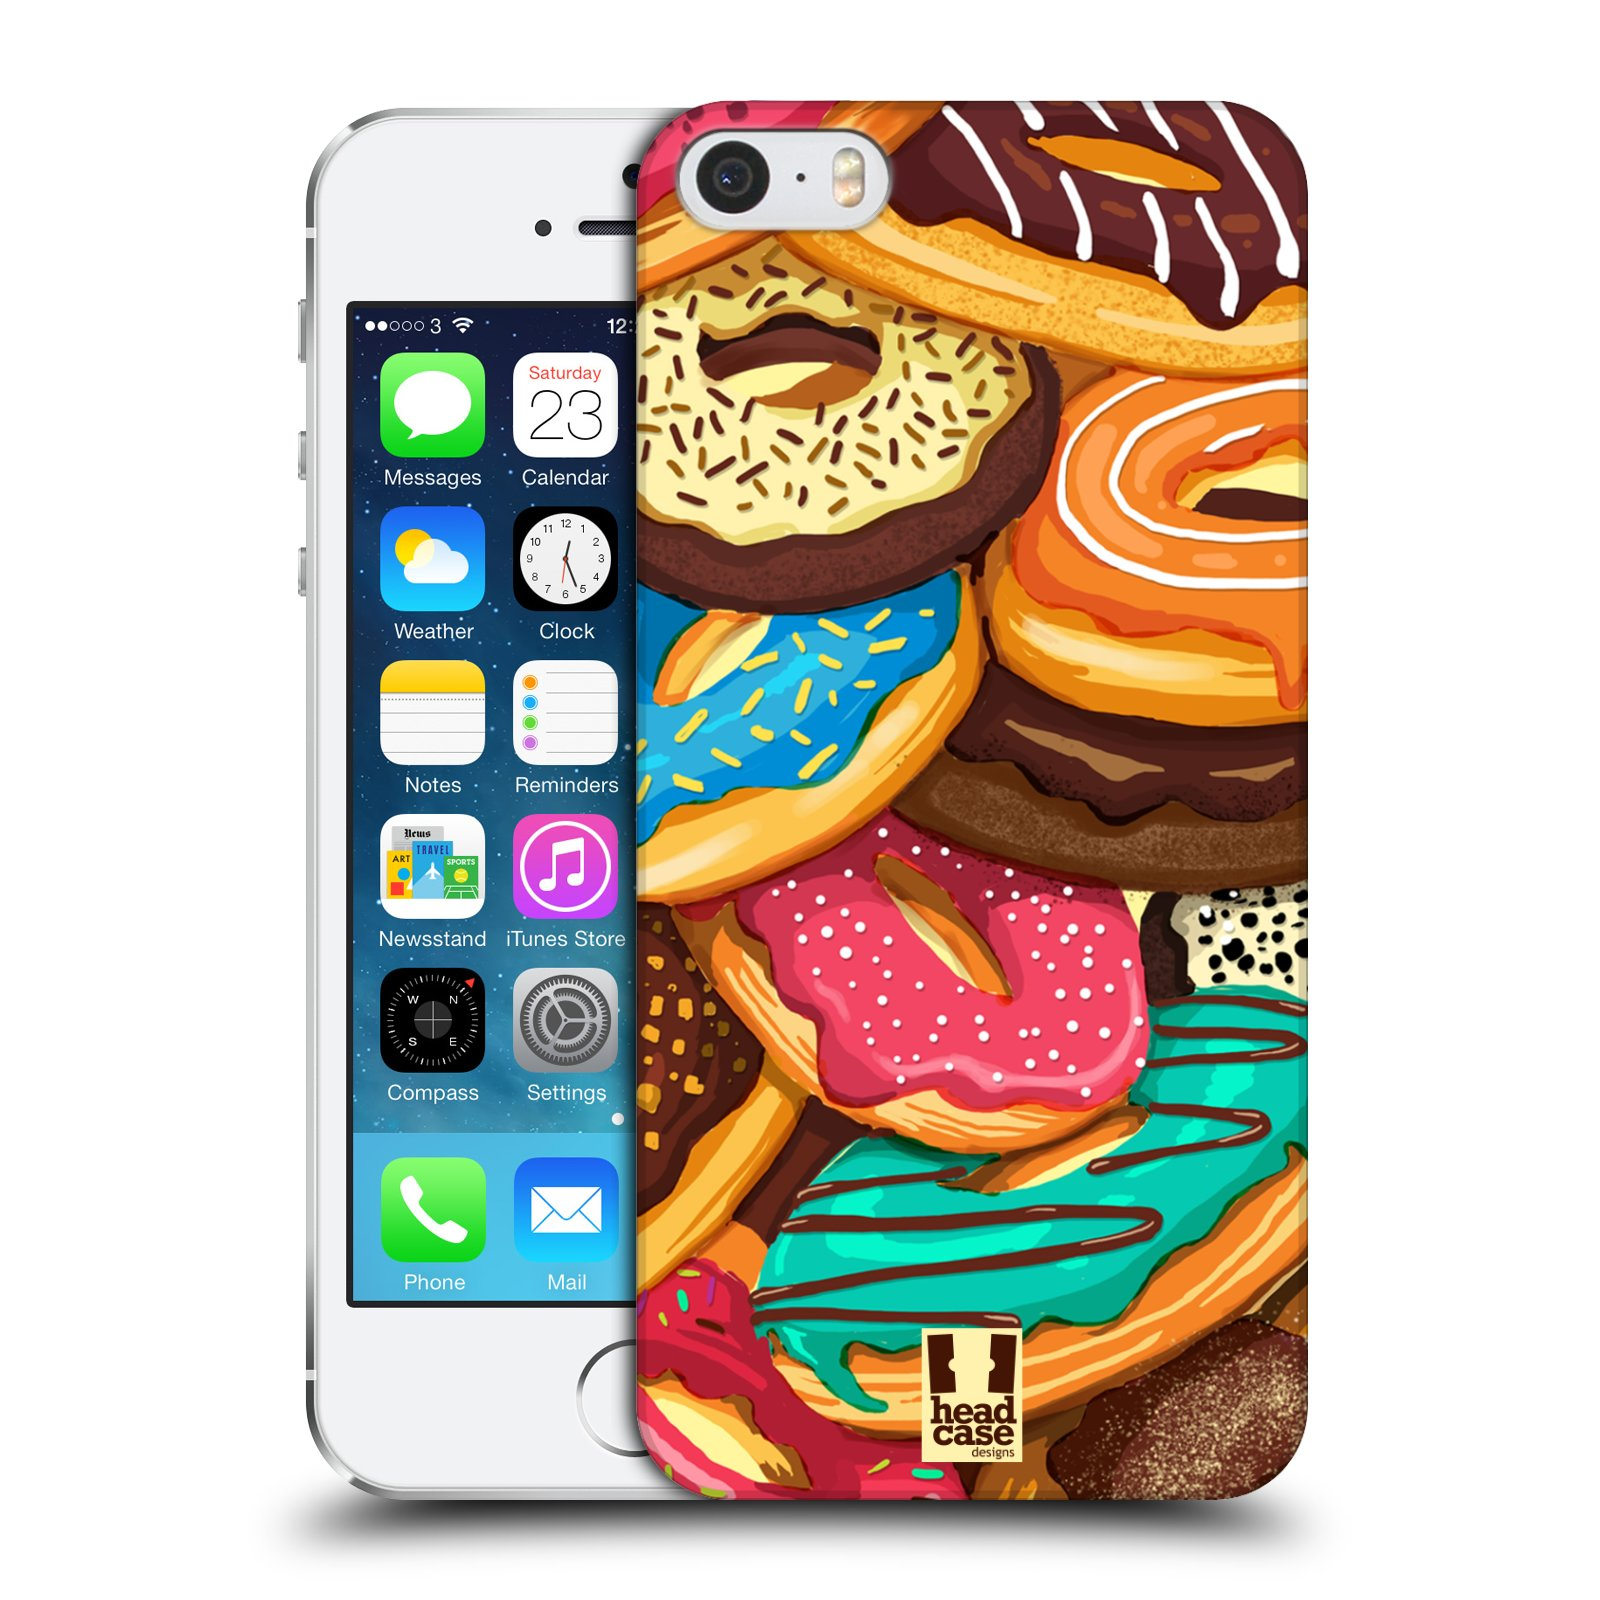 HEAD CASE DESIGNS DOUGHNUTS CASE COVER FOR APPLE iPHONE 5 5S